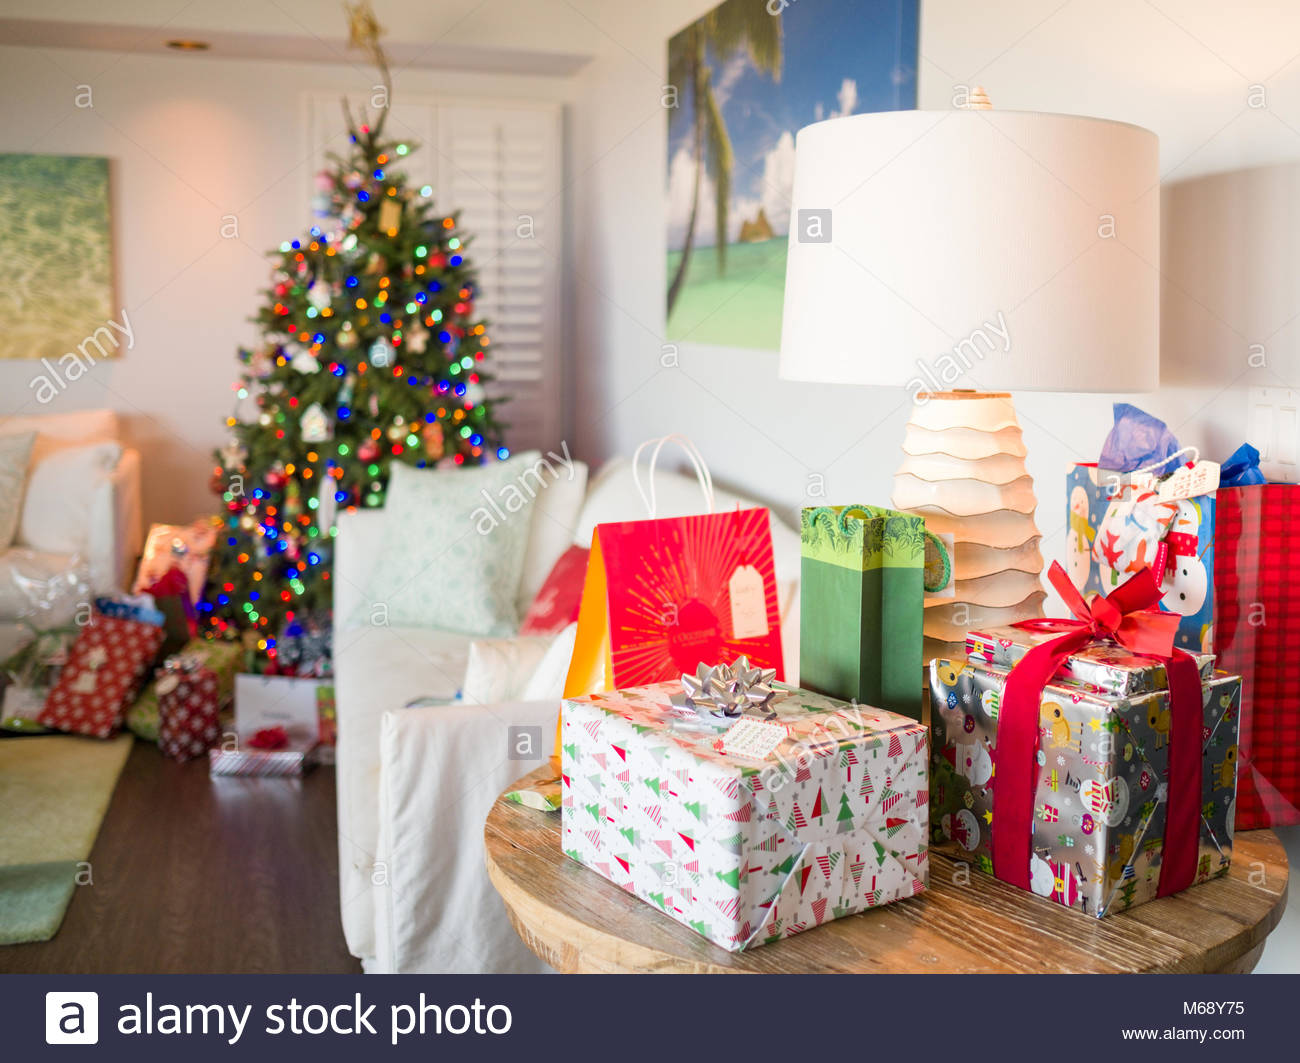 Wrapped and decorated presents on Christmas morning, USA Stock Photo